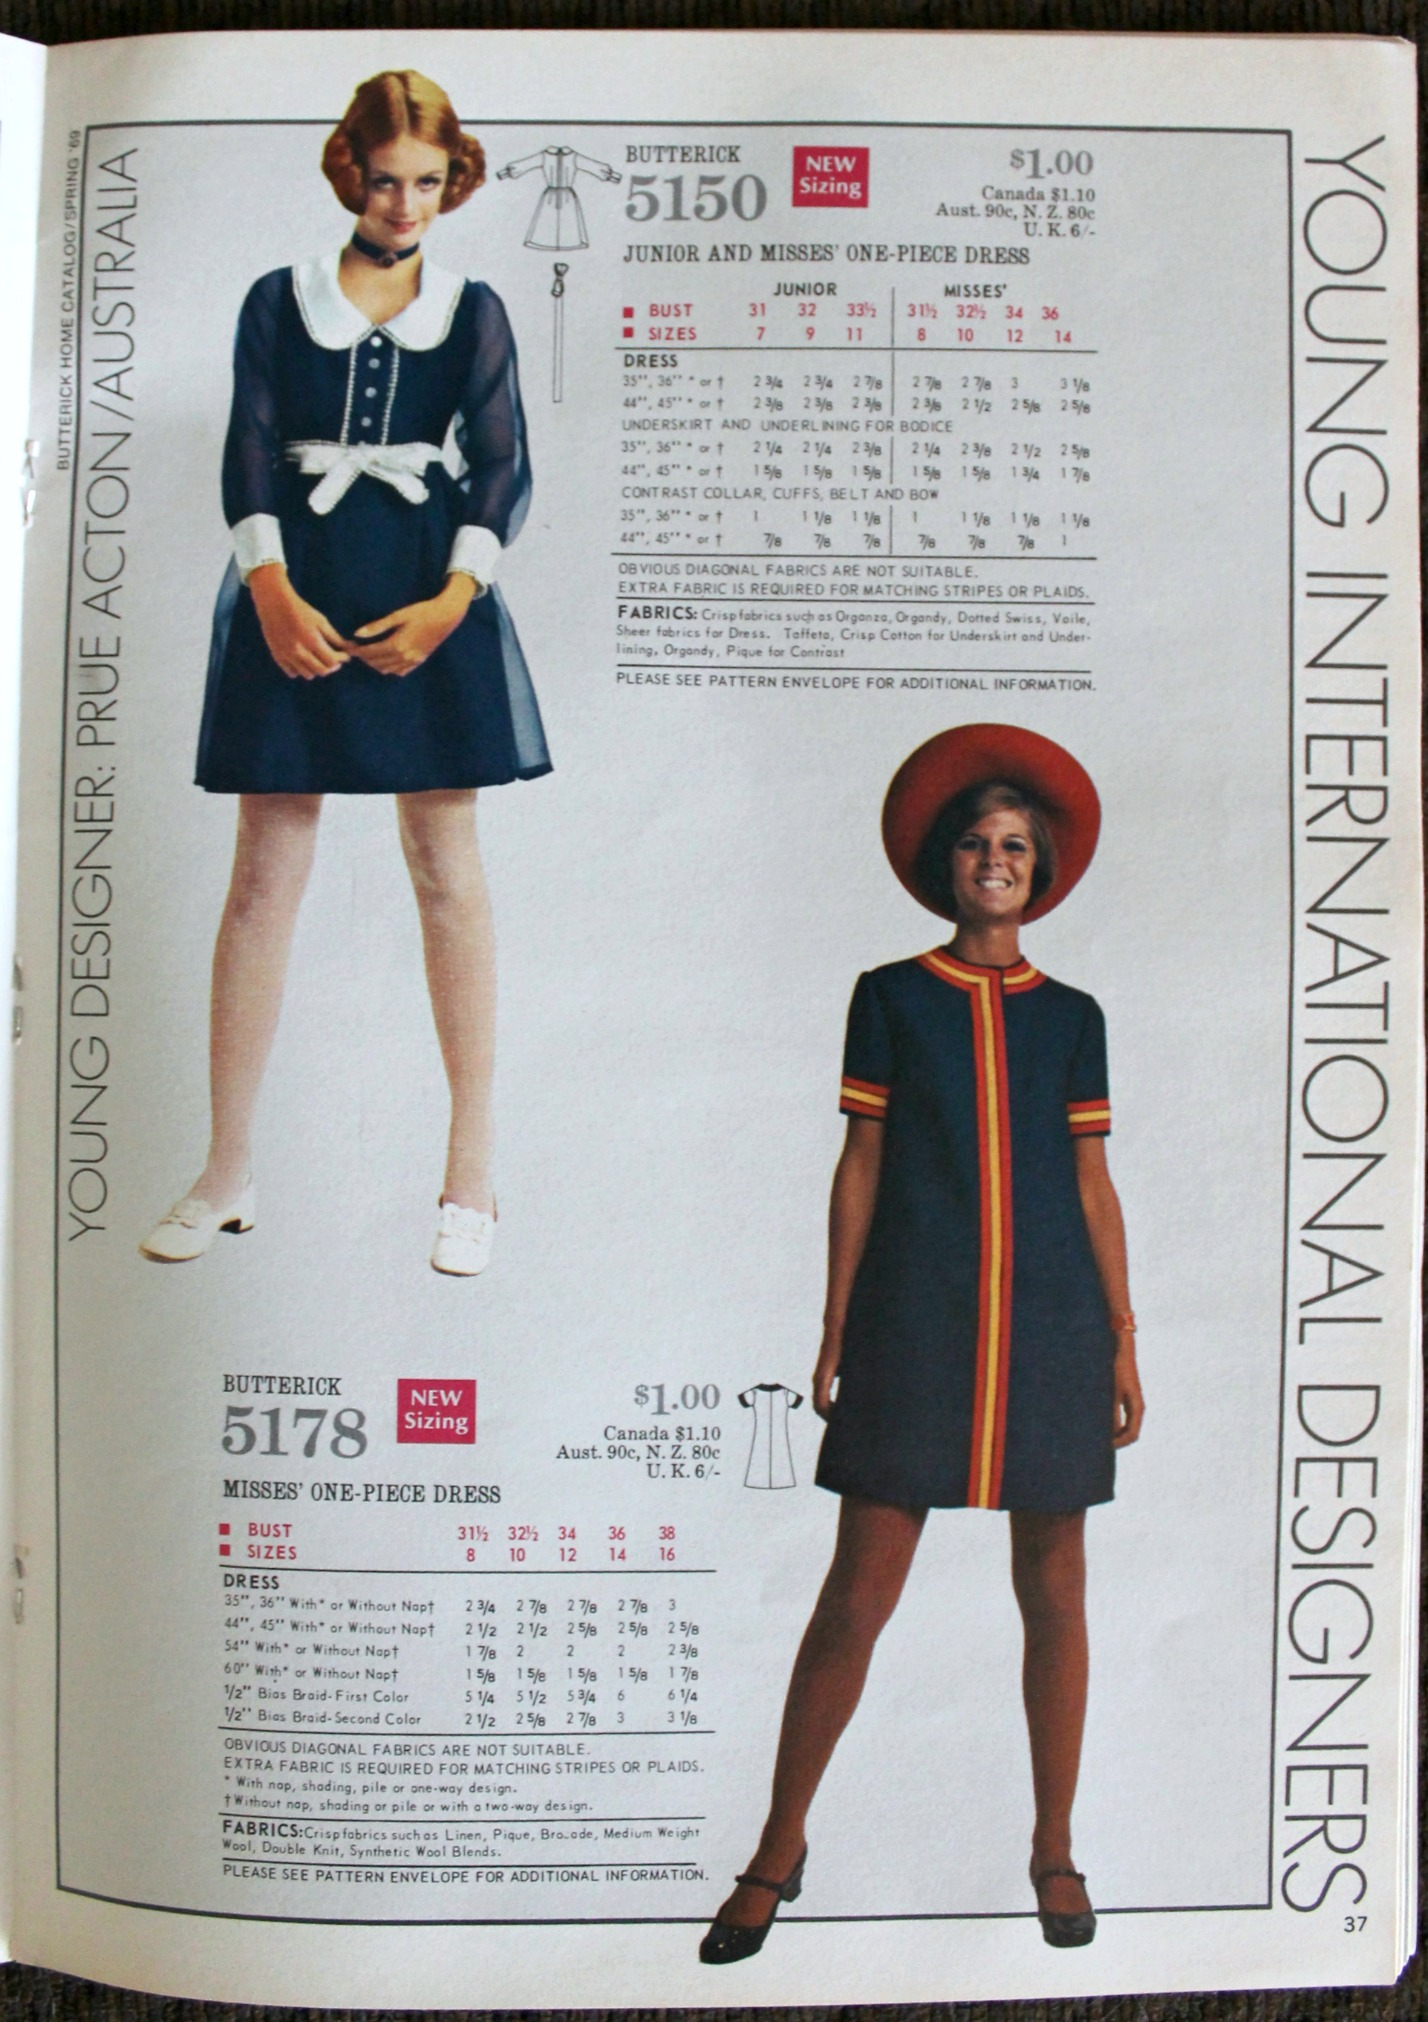 1969 Butterick Catalog Vintage Sewing Patterns Girl In